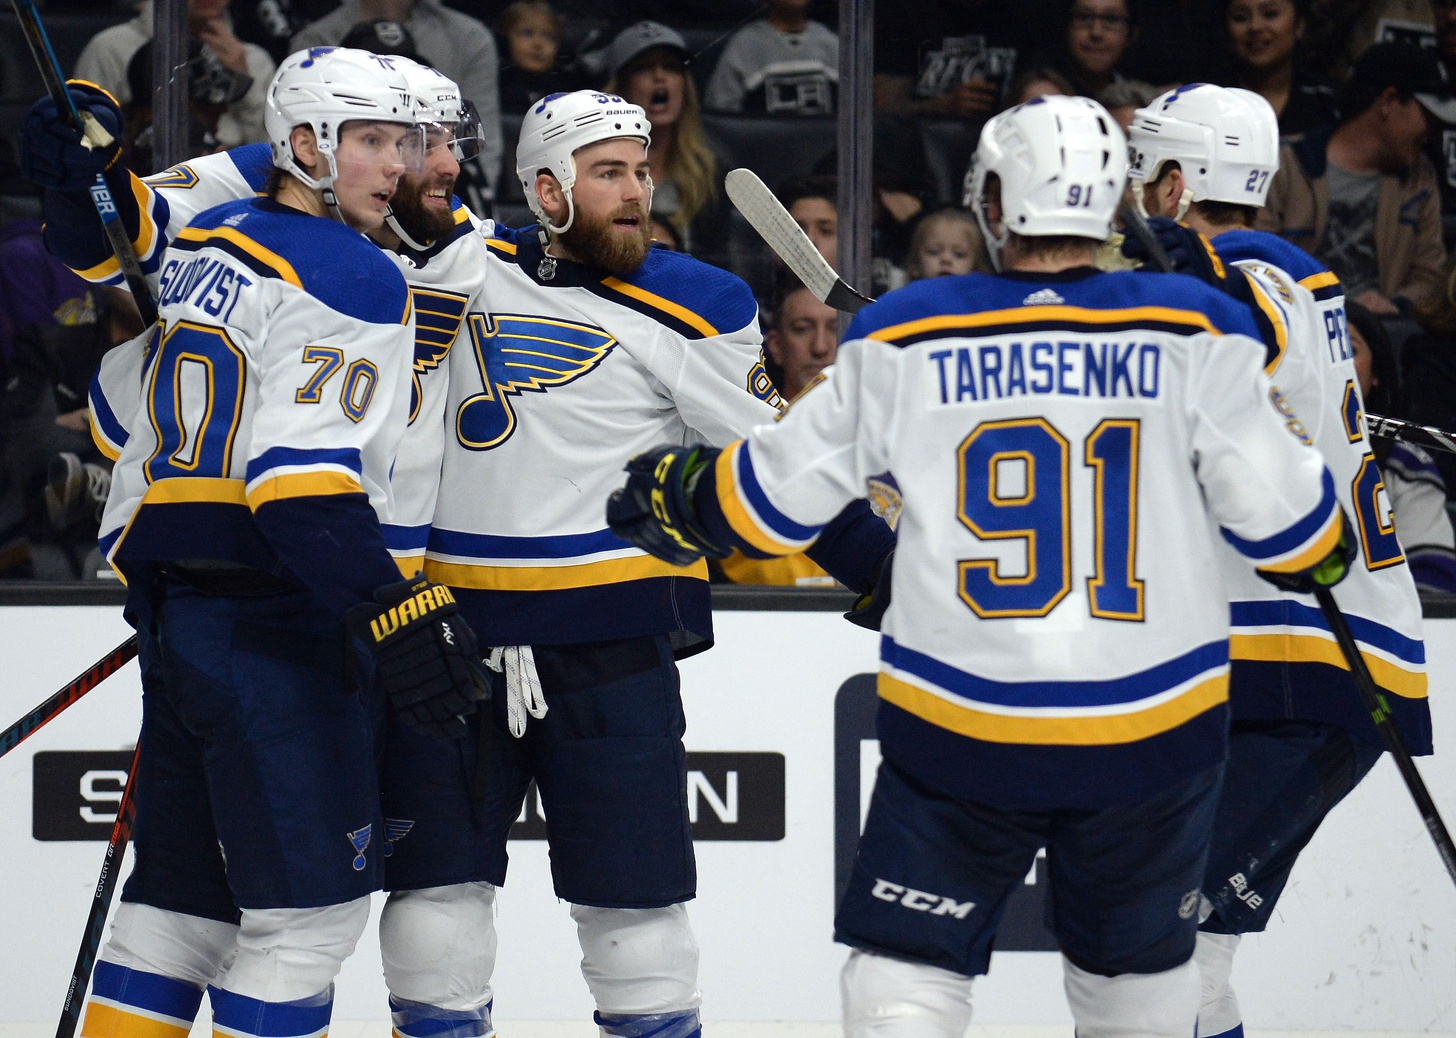 The Blues will be on 101 ESPN radio beginning in 2019-20